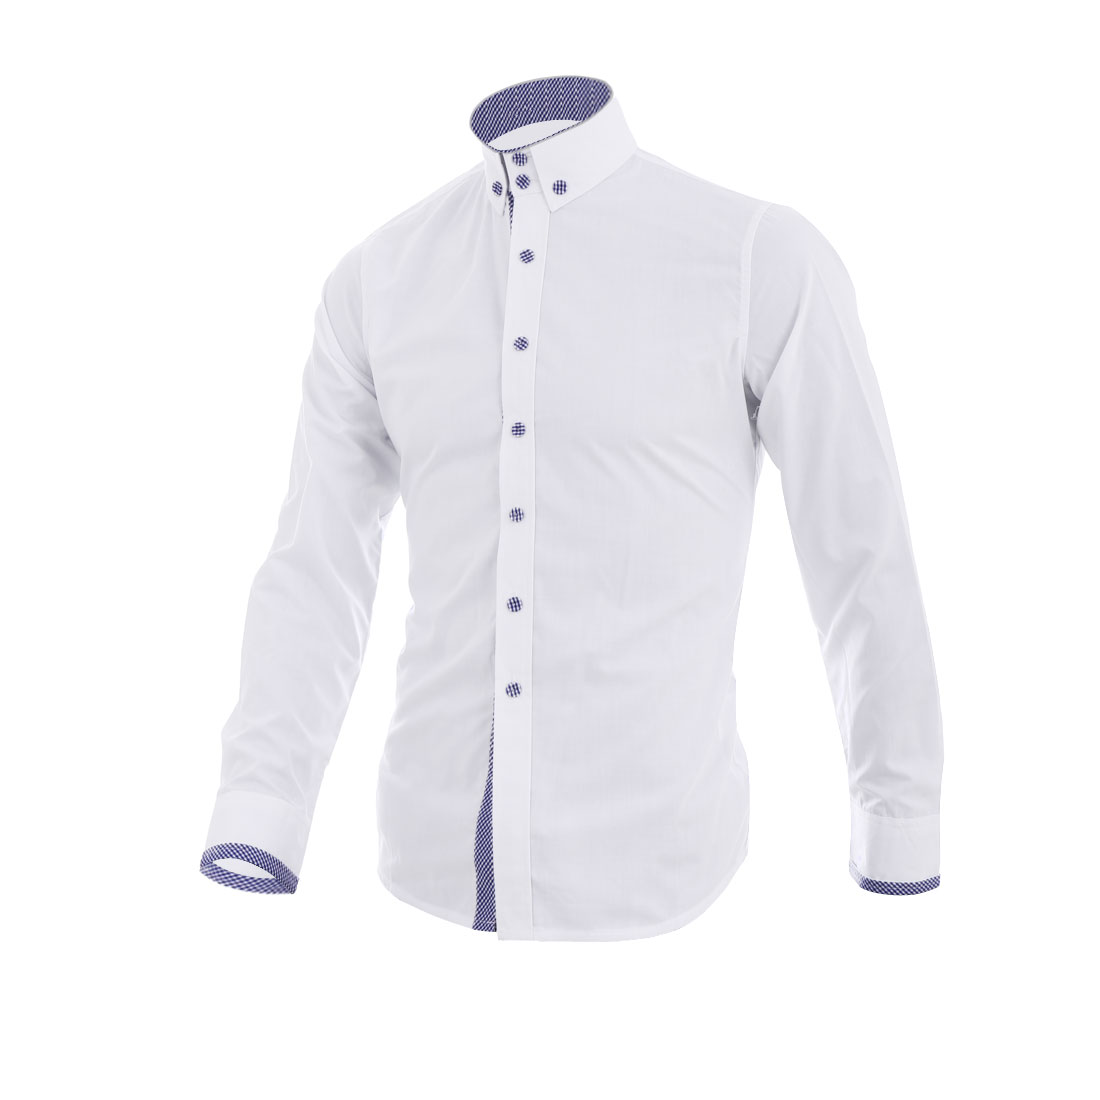 Men Point Collar Button Up Plaids Detail Shirt White M